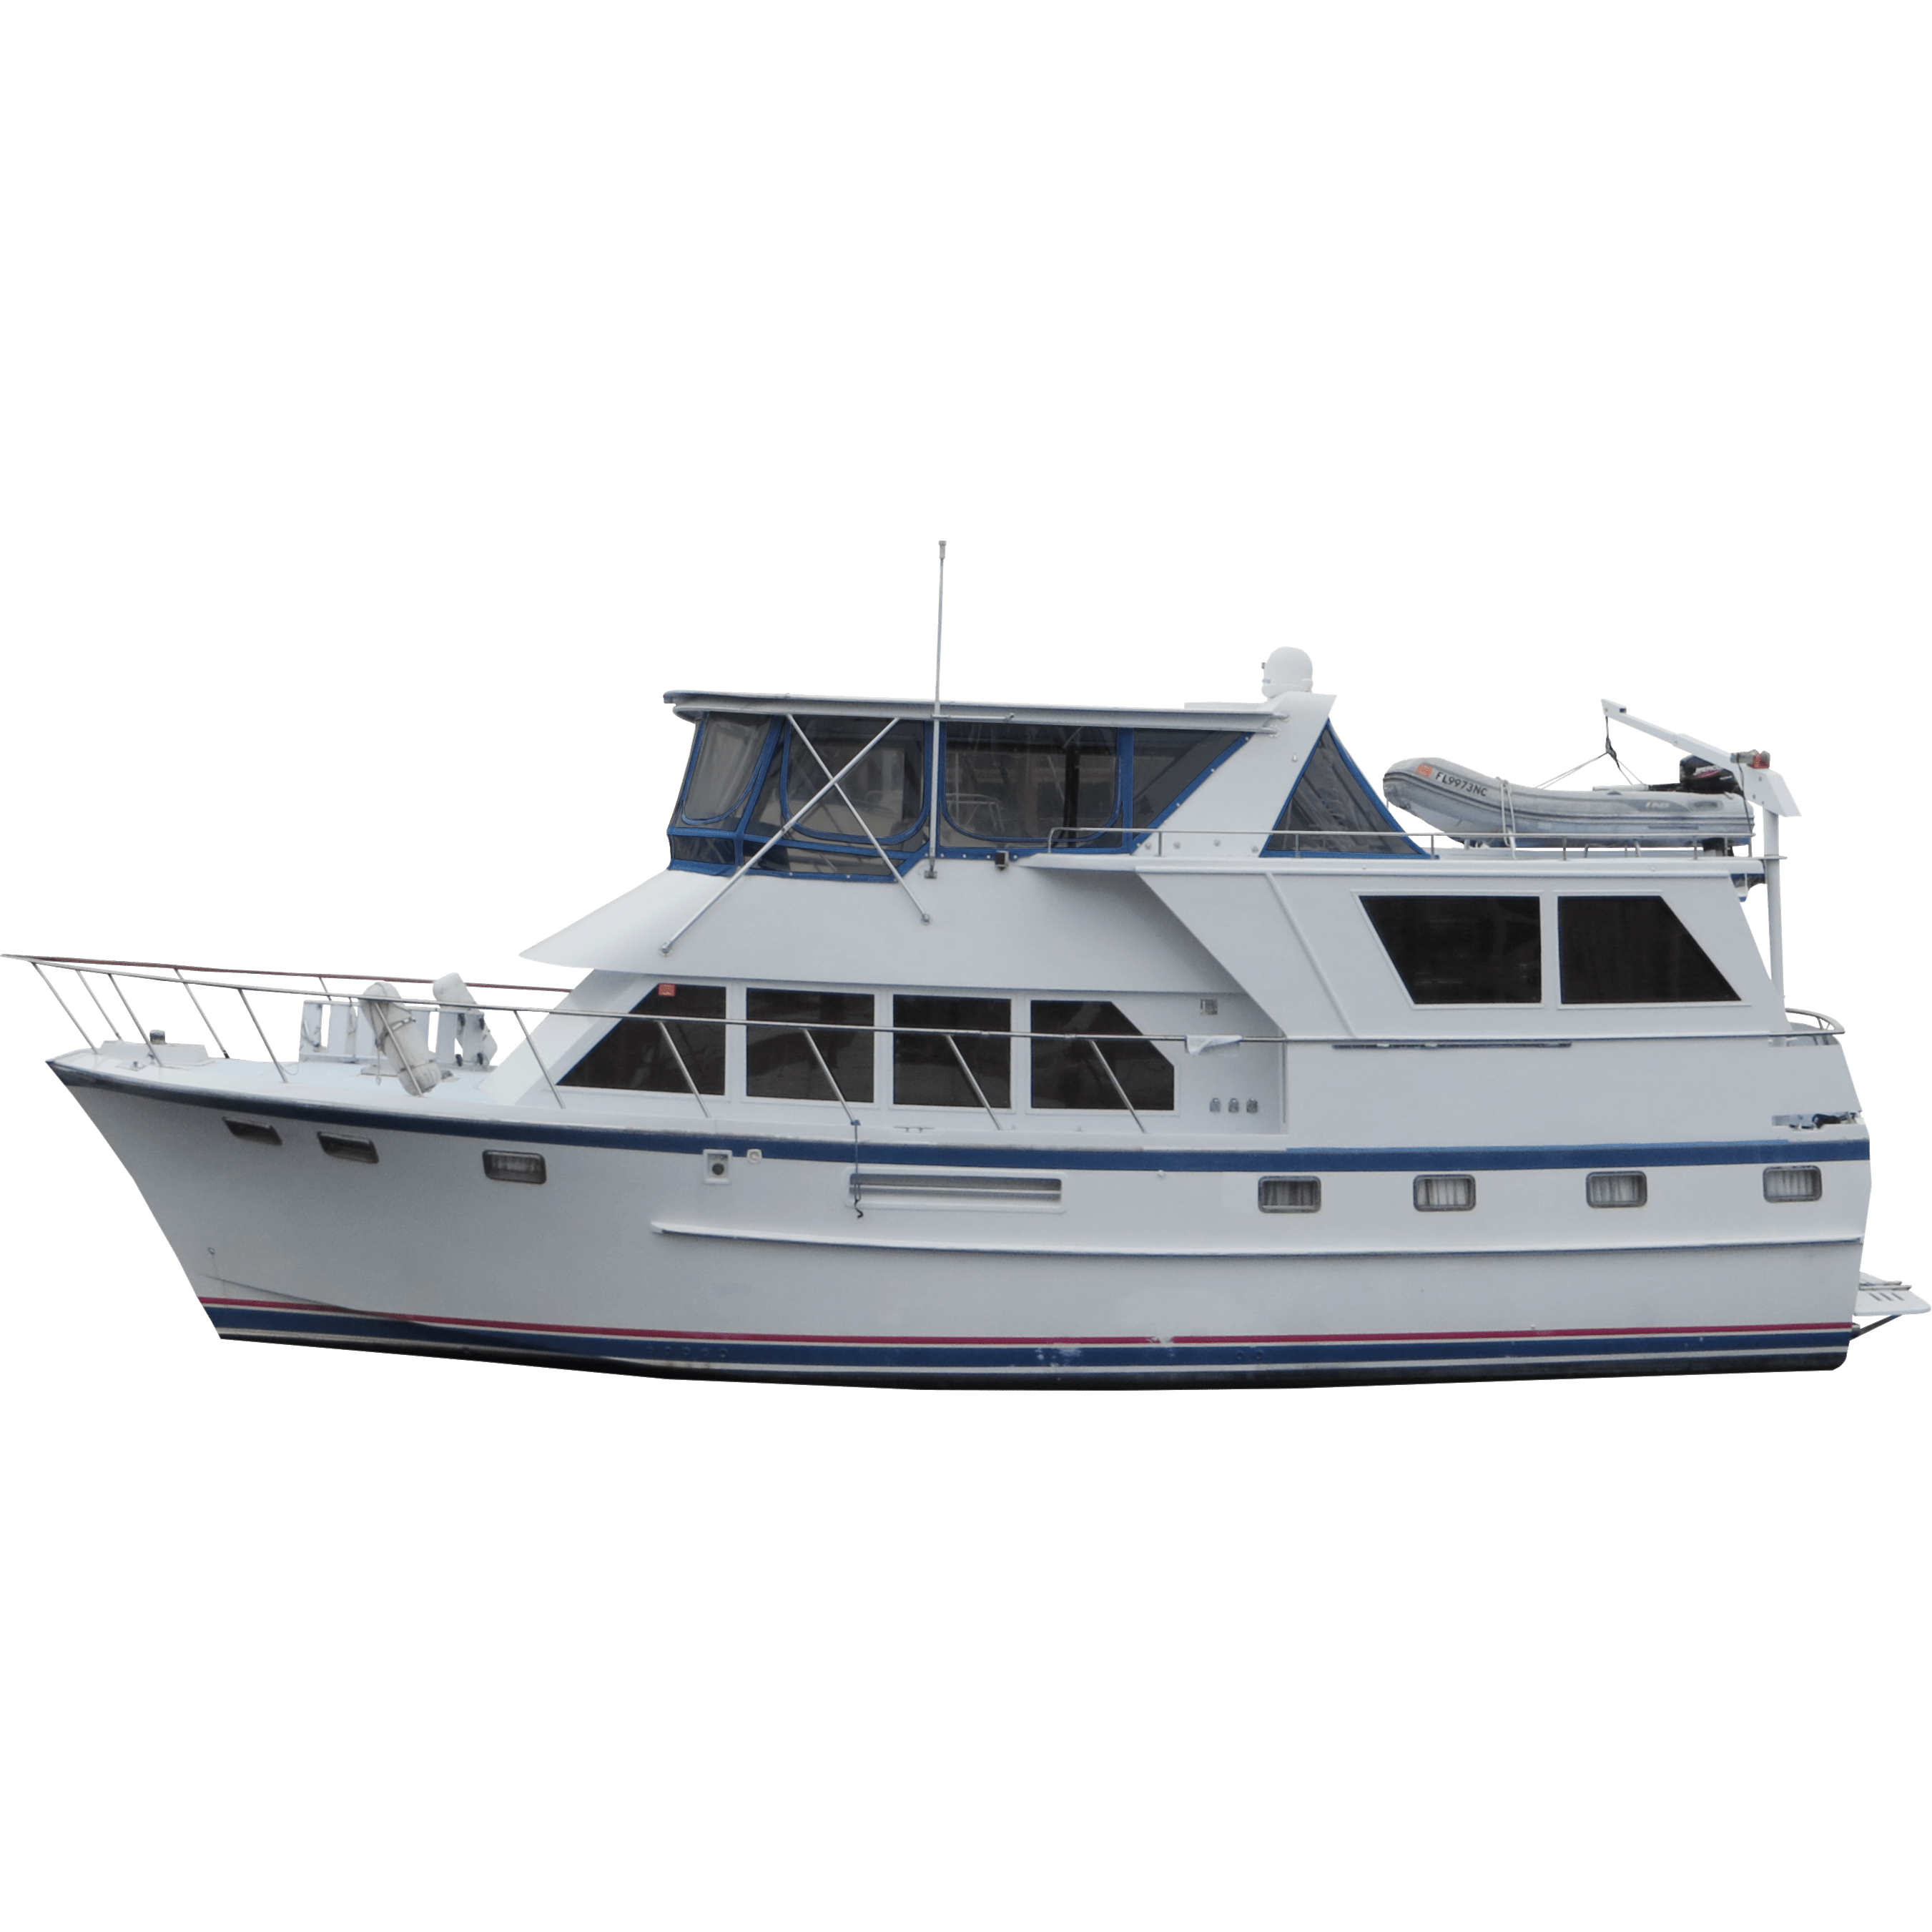 Small transparent stickpng download. Yacht png water transportation graphic royalty free download